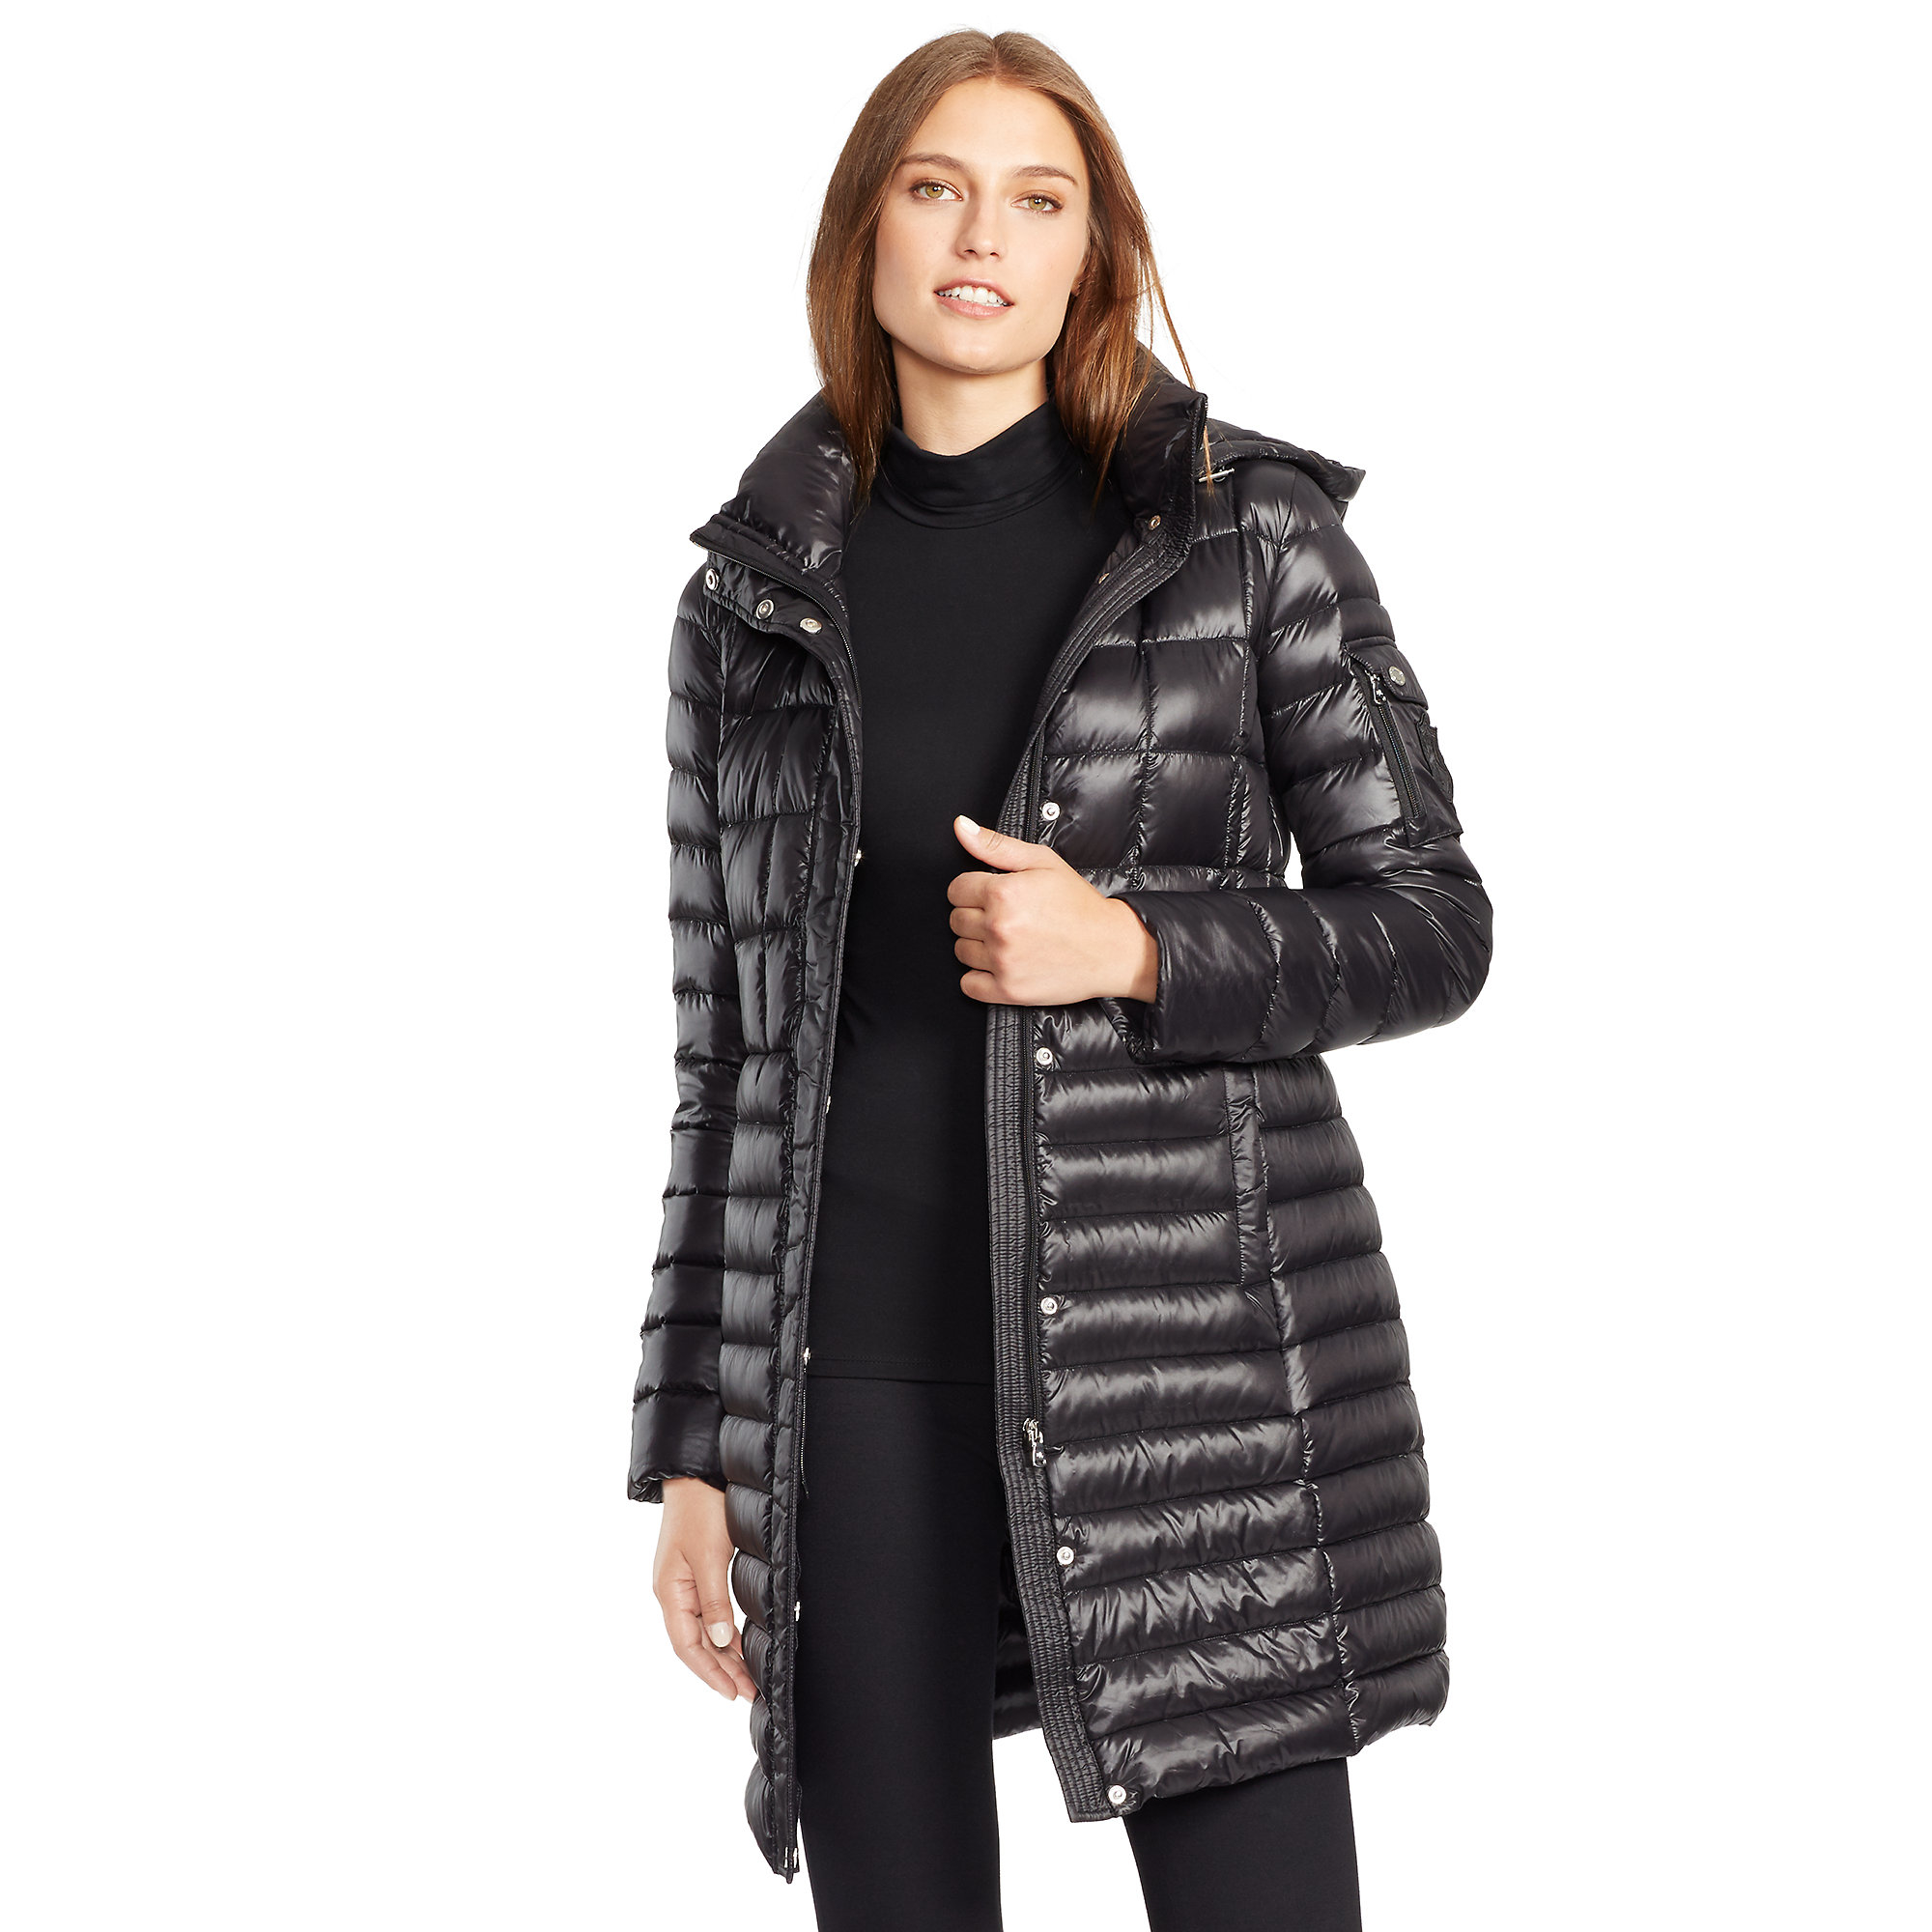 packable down hooded coat by ralph lauren .